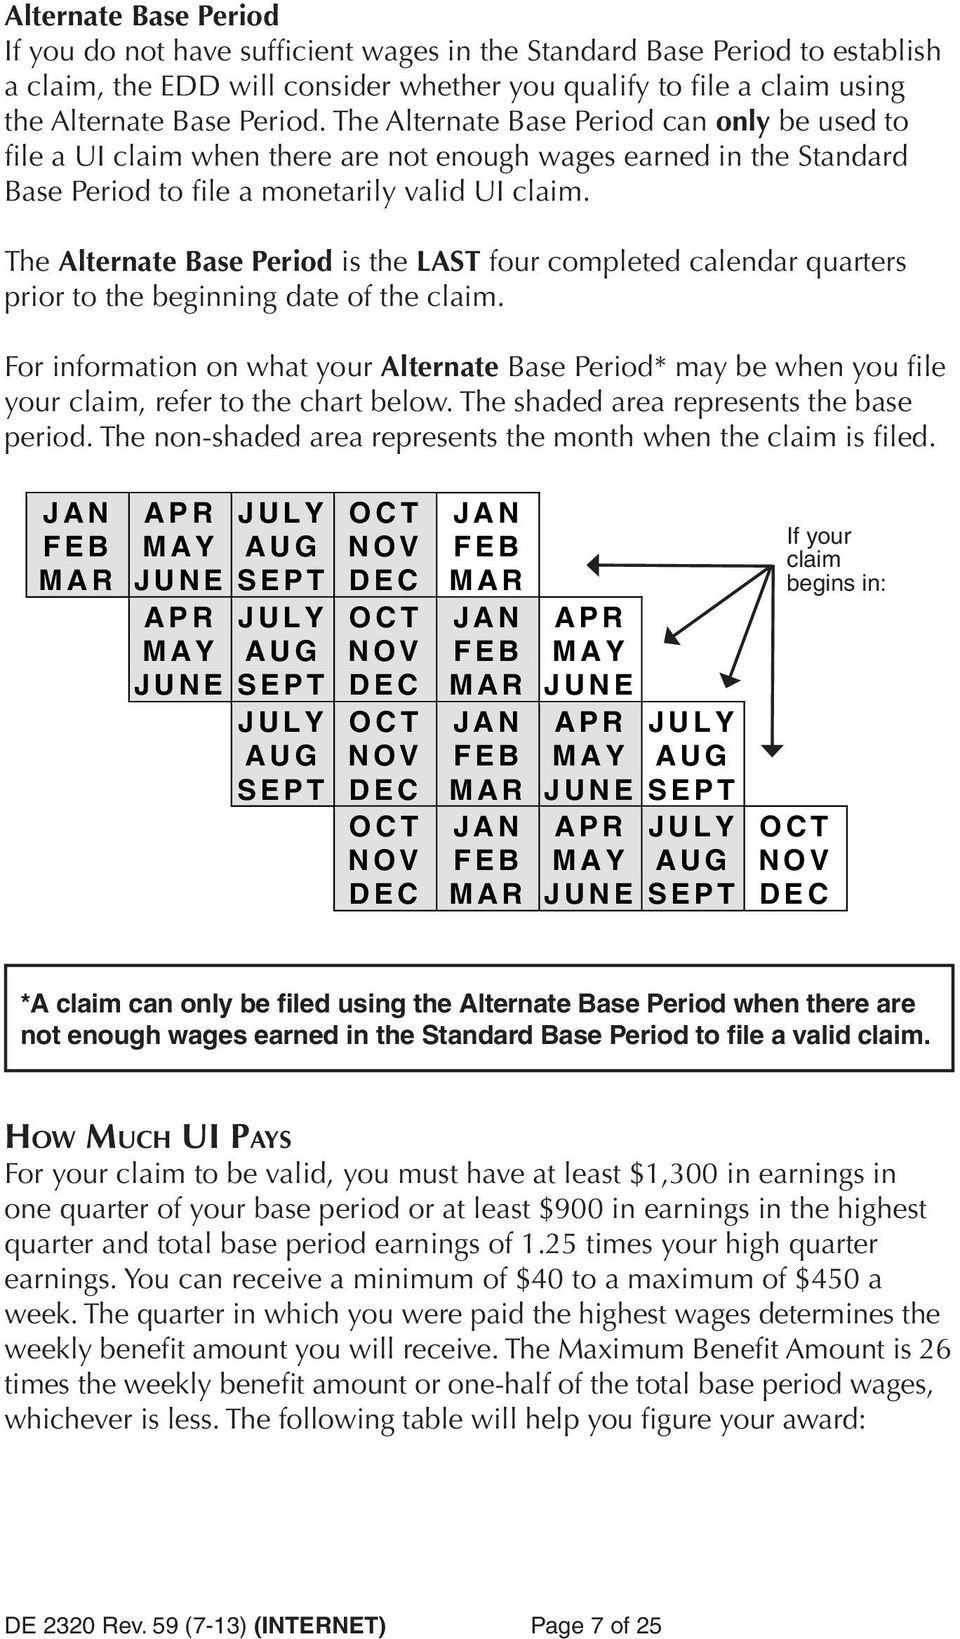 The Alternate Base Period is the LAST four completed calendar quarters prior to the beginning date of the claim.